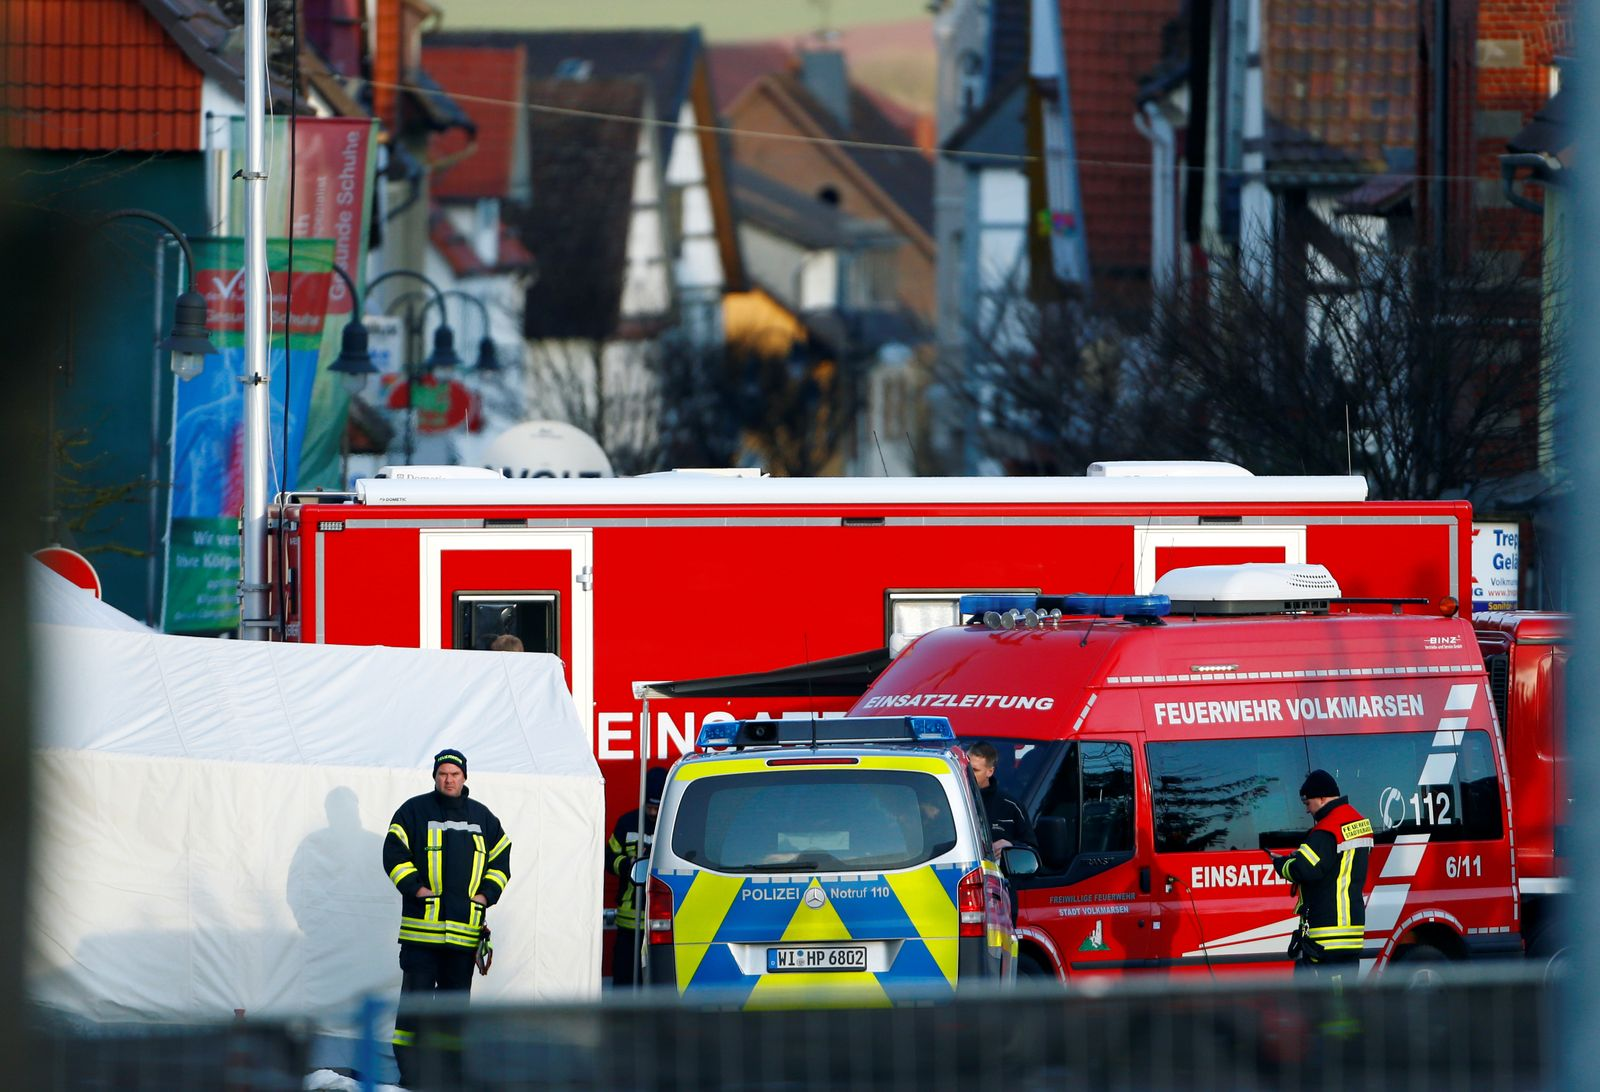 The area is secured by the firefighters and police the day after a car ploughed into a carnival parade injuring several people in Volkmarsen